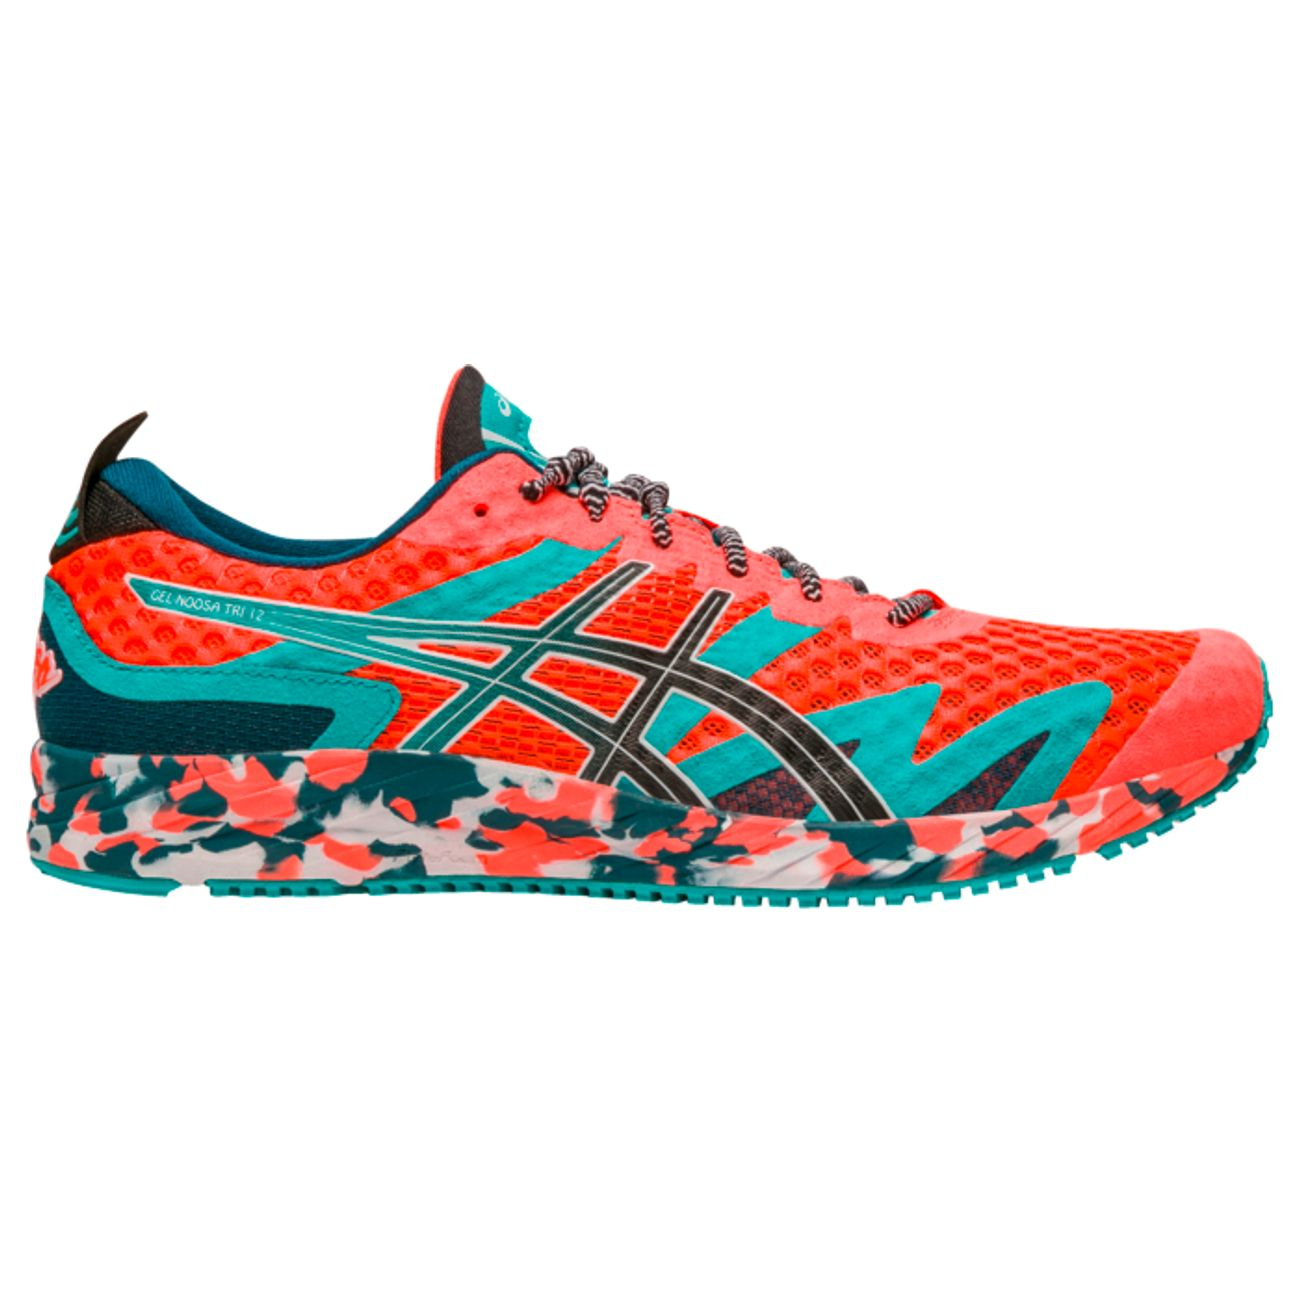 CHAUSSURES BASSES running homme ASICS GEL-NOOSA TRI 12